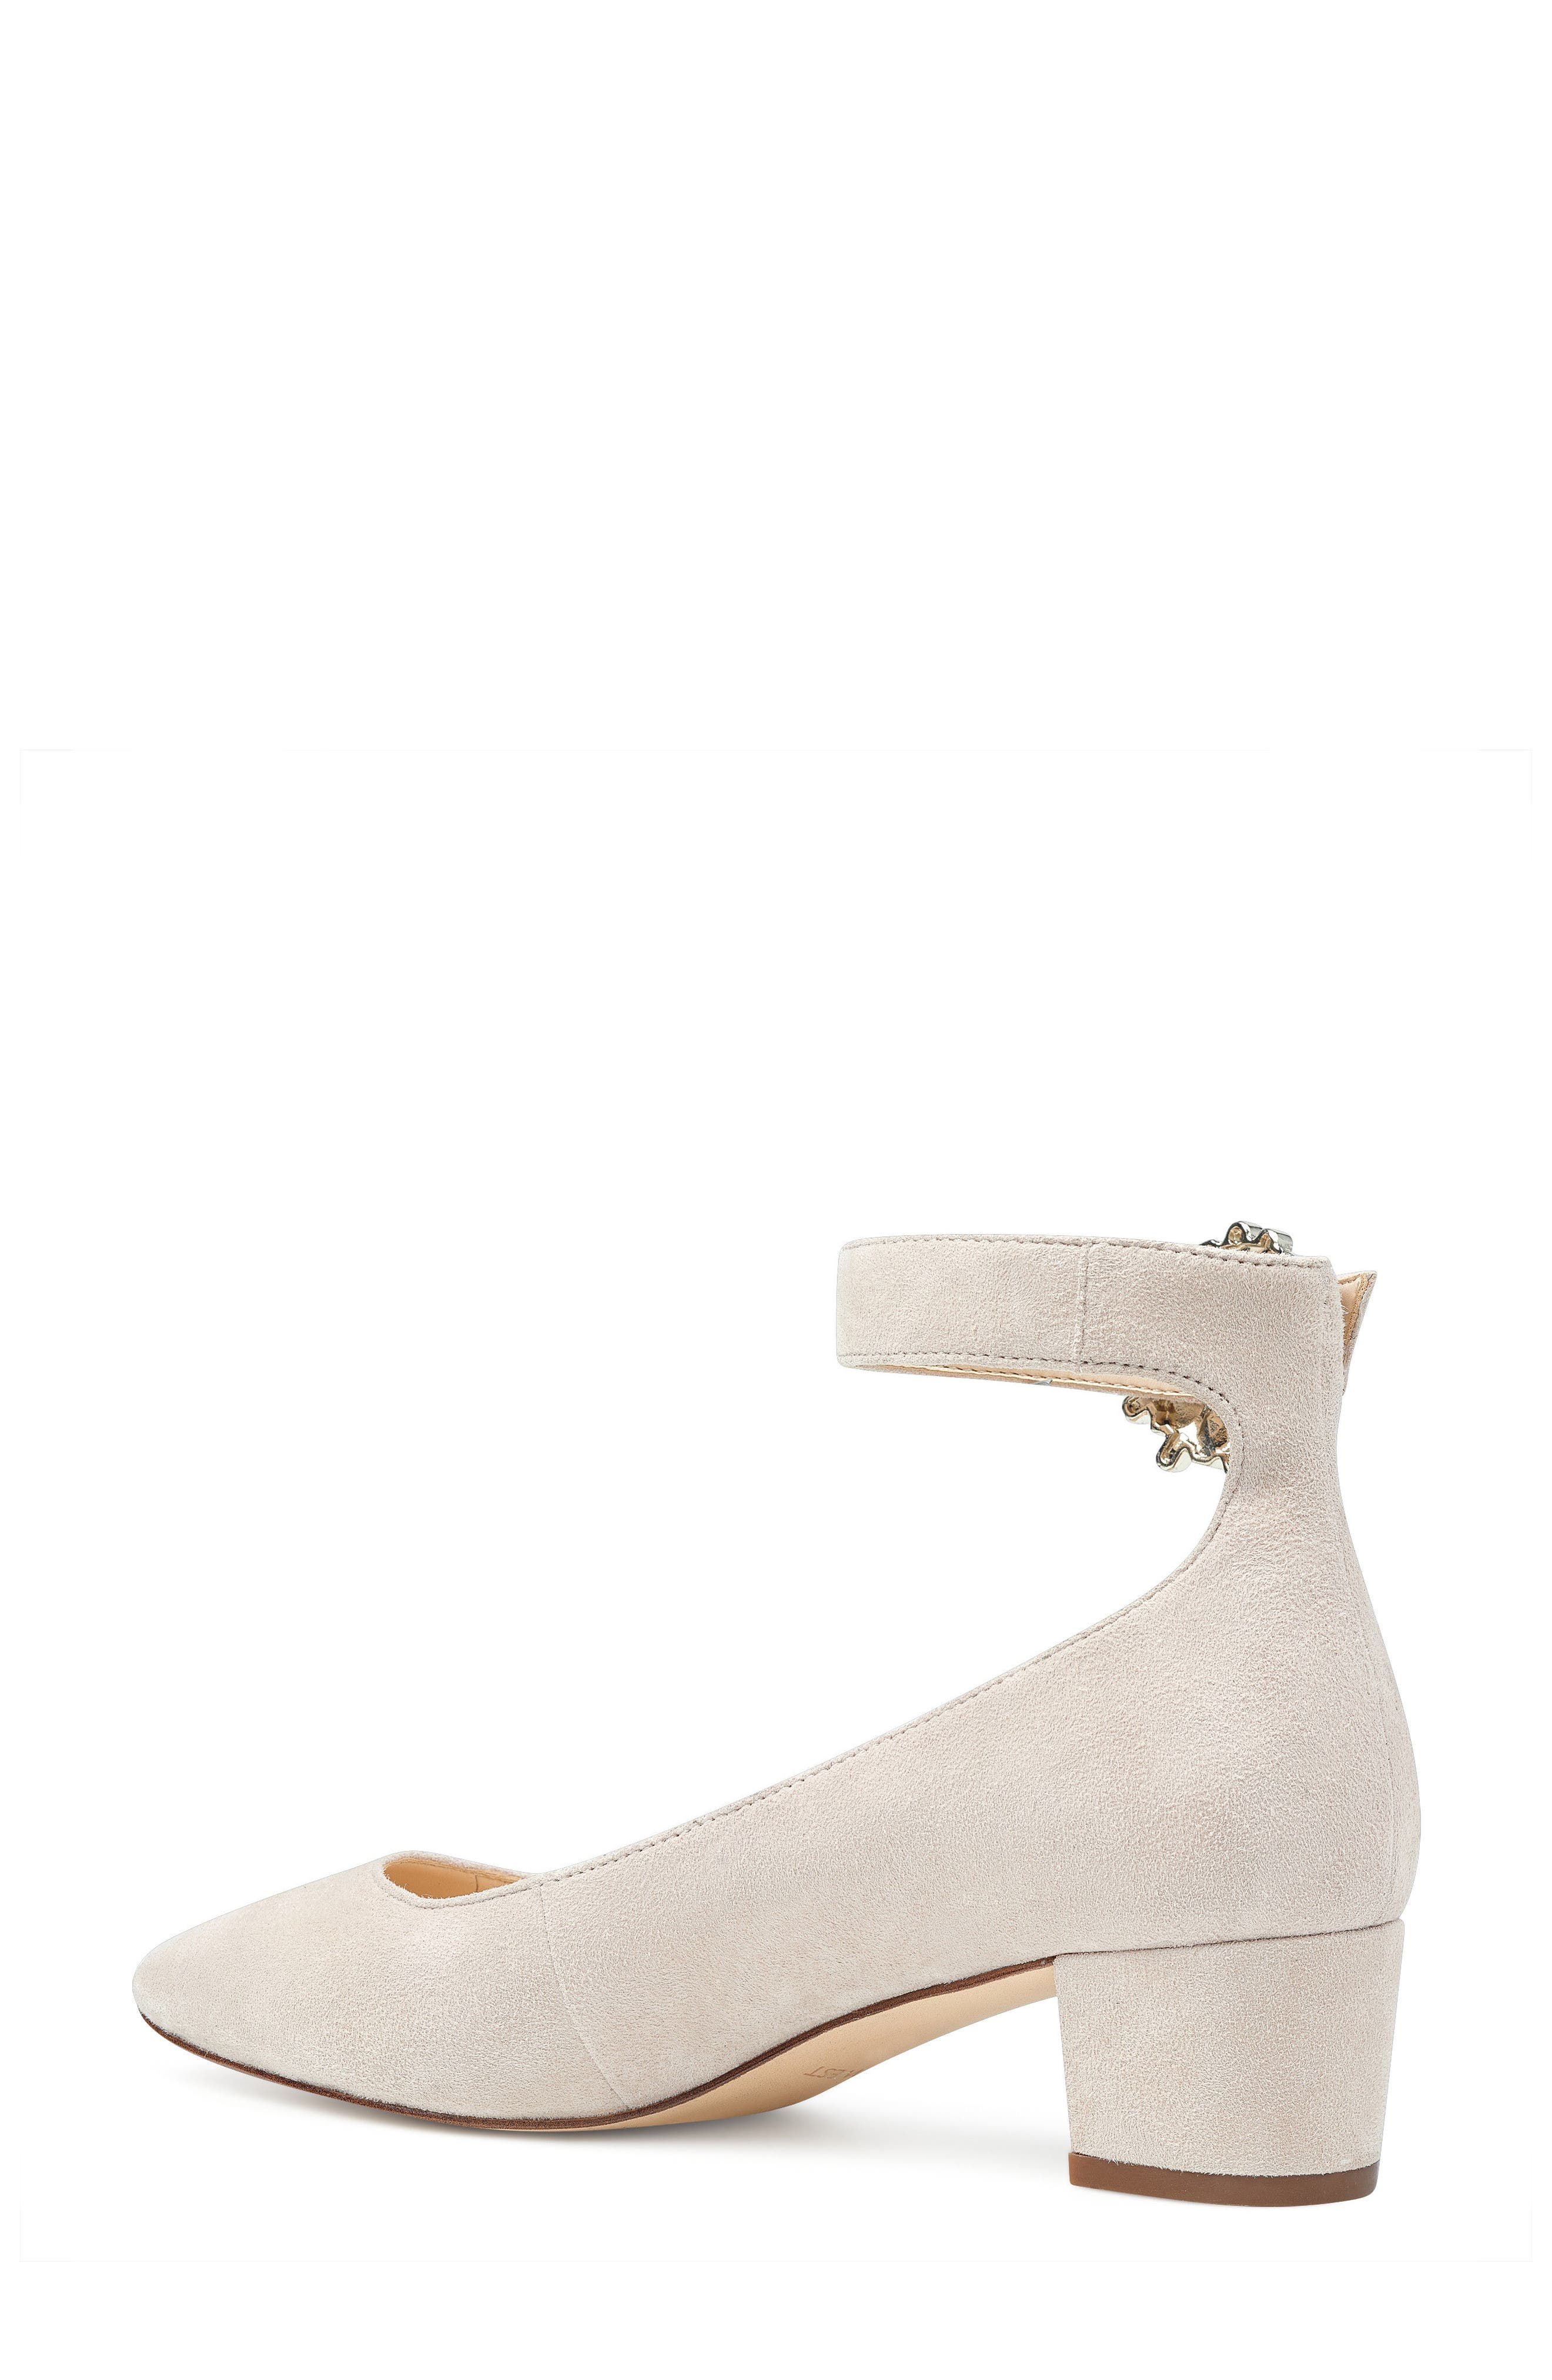 Bartly Ankle Strap Pump,                             Alternate thumbnail 5, color,